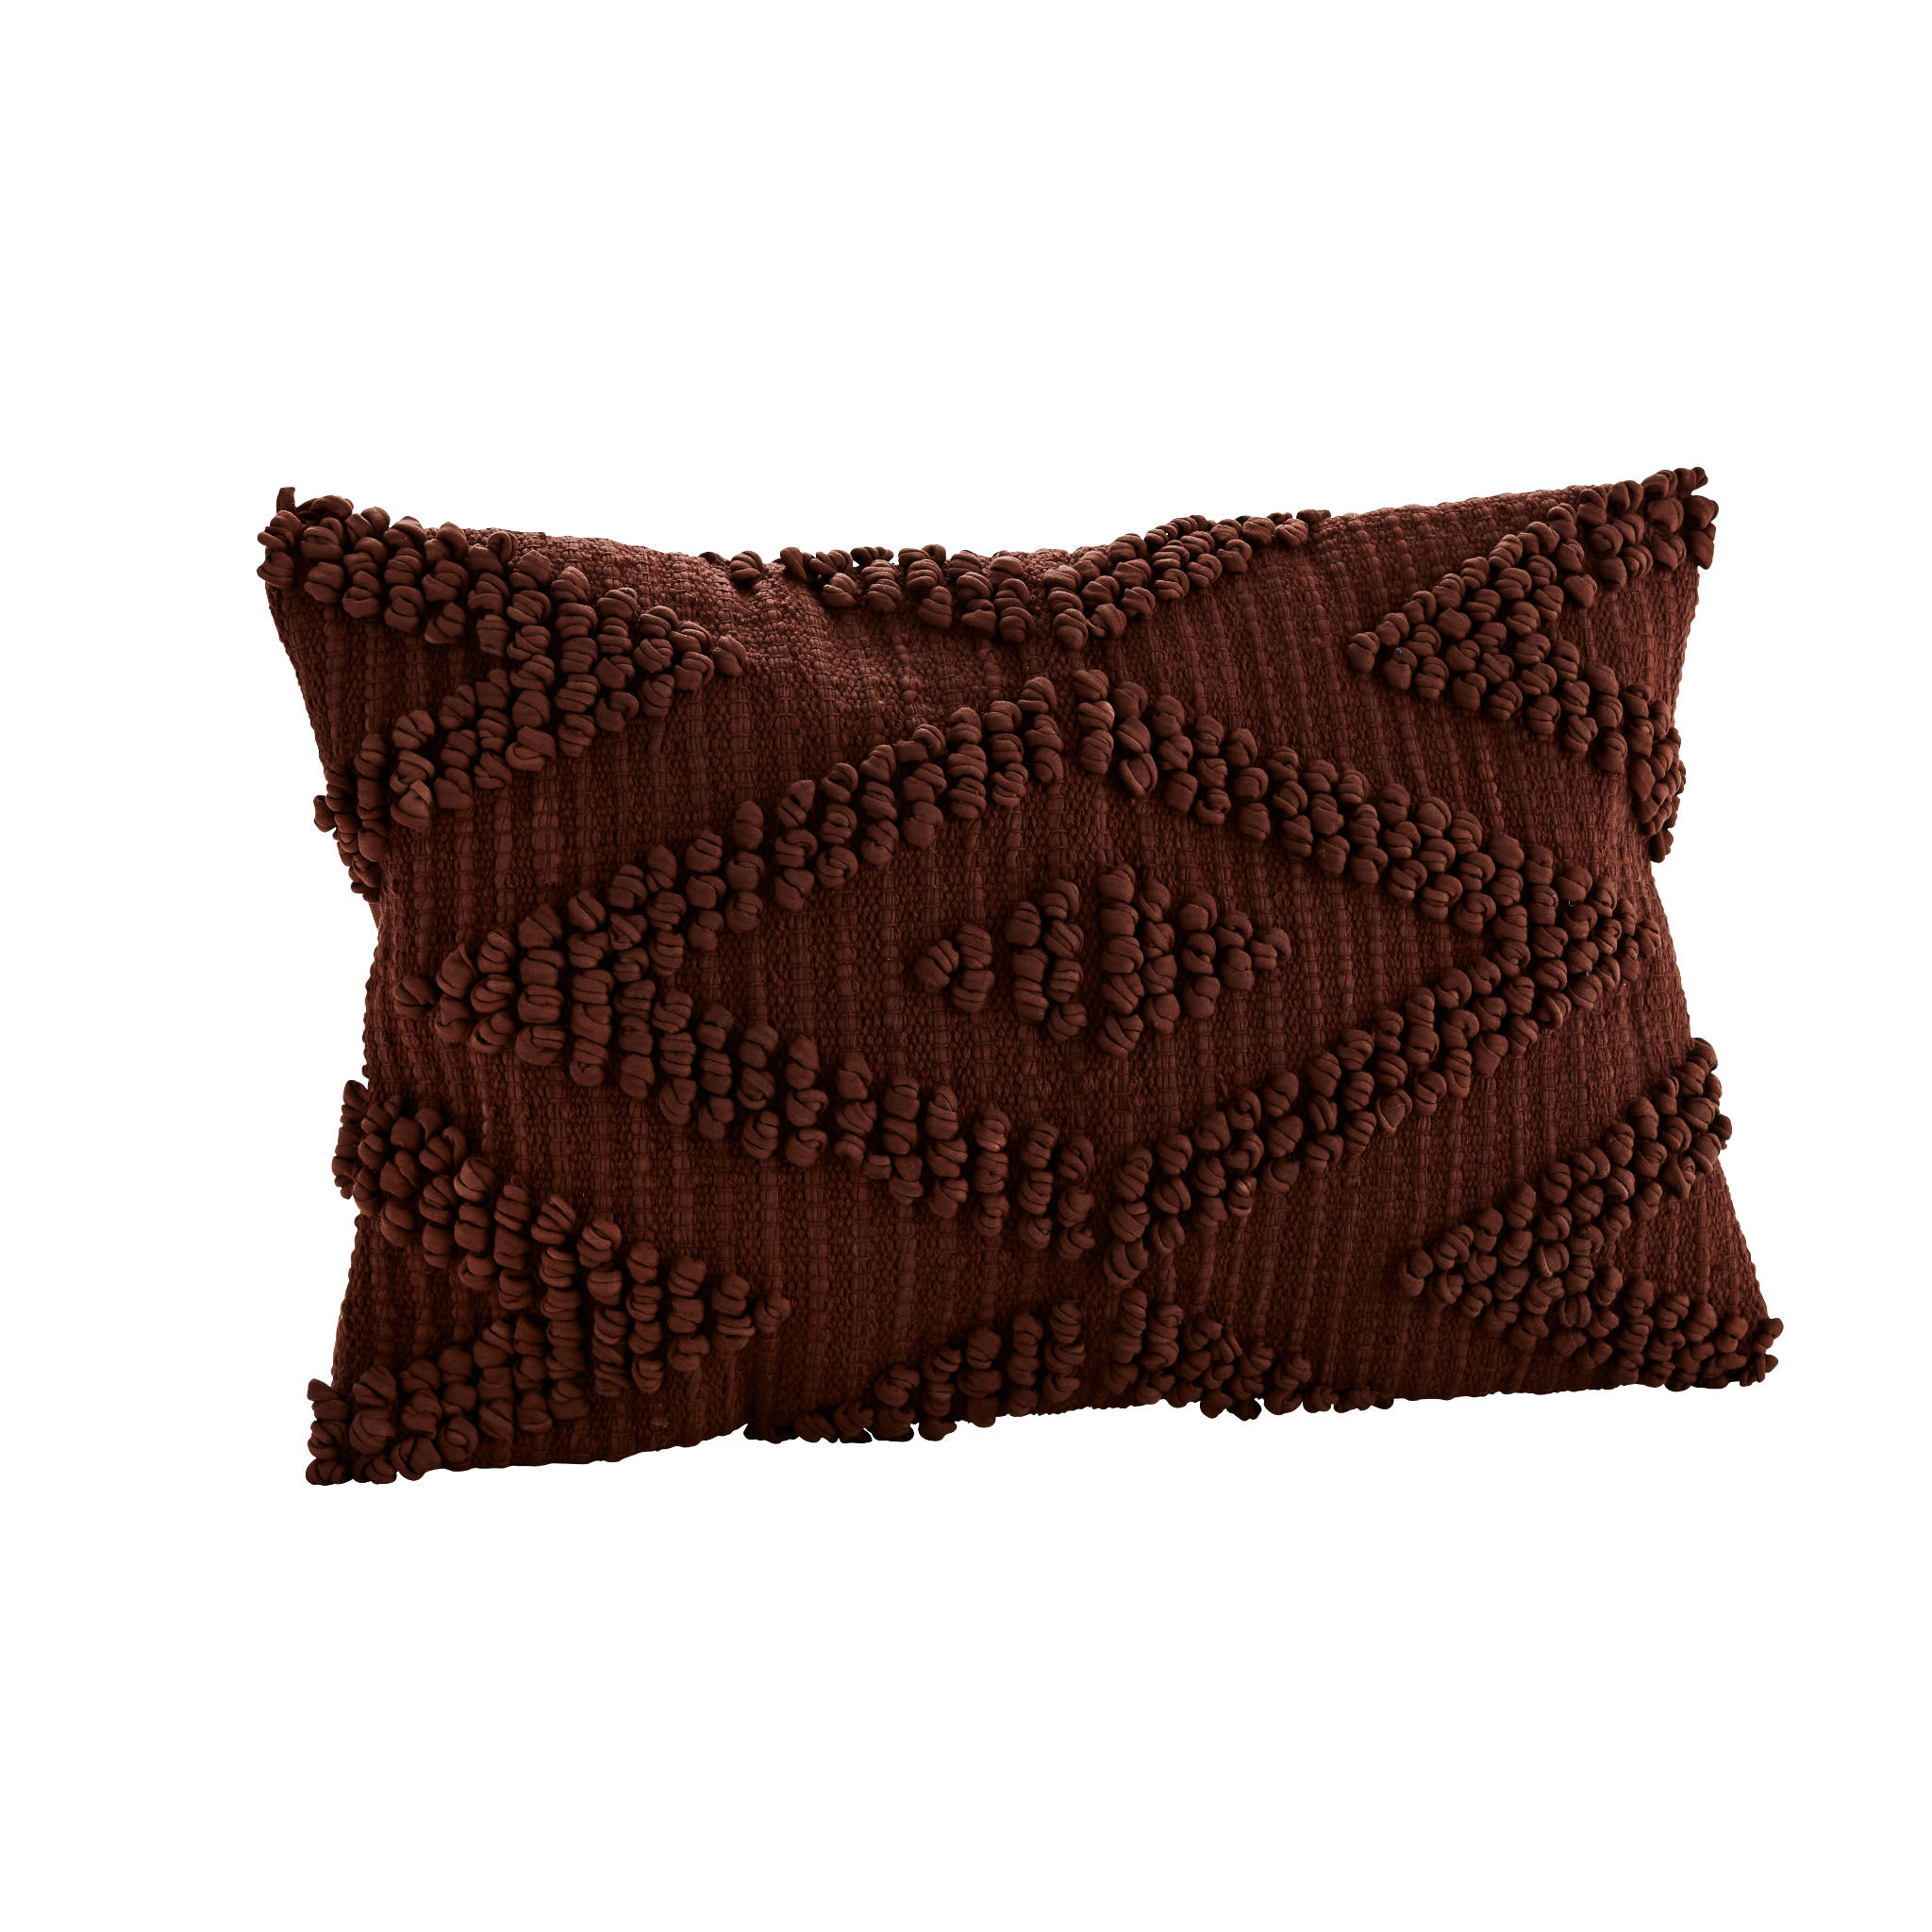 Madame Stoltz Paprika Cushion Cover